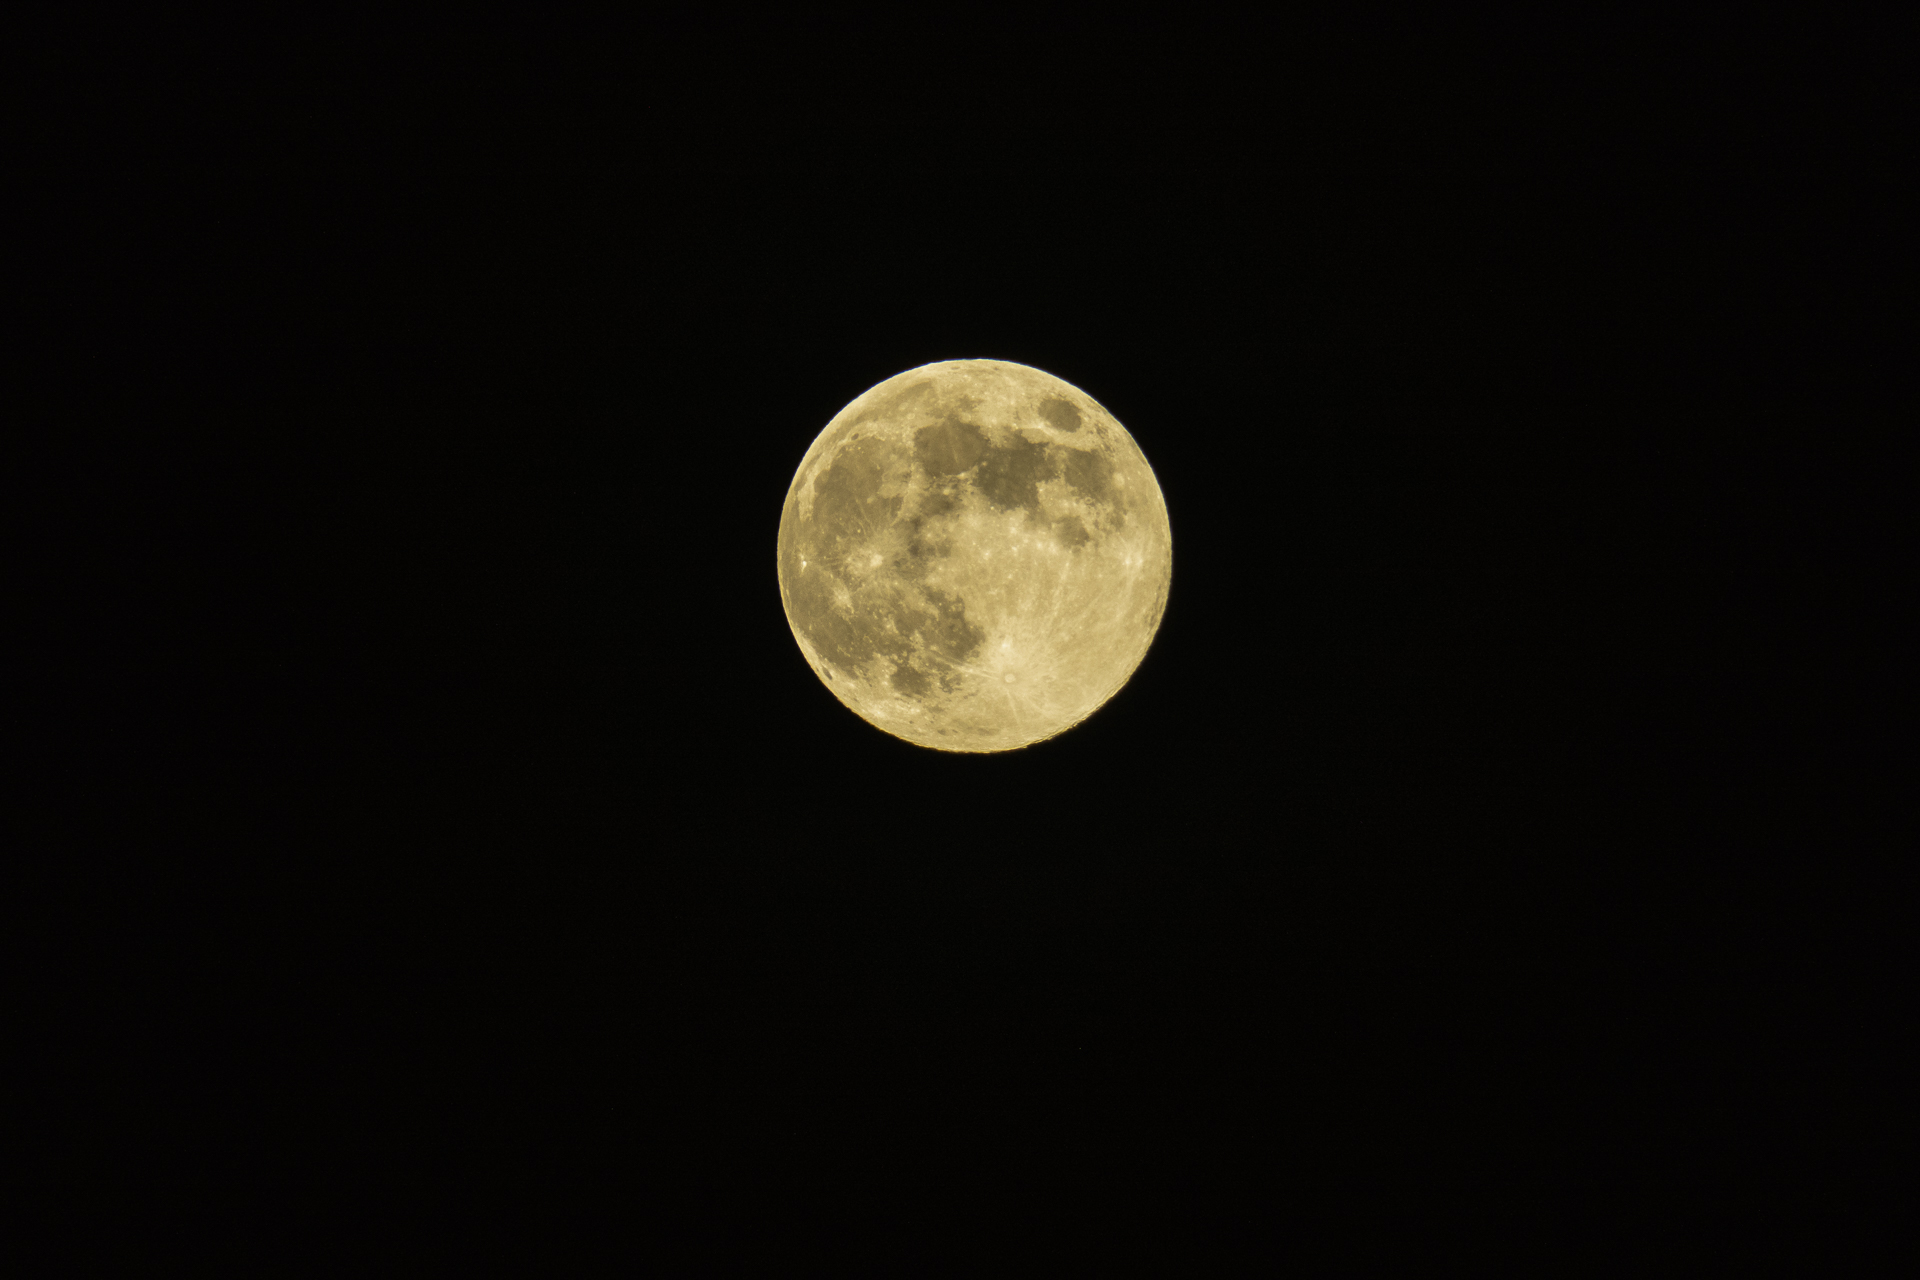 2018-04-29-Vollmond_01-2.jpg